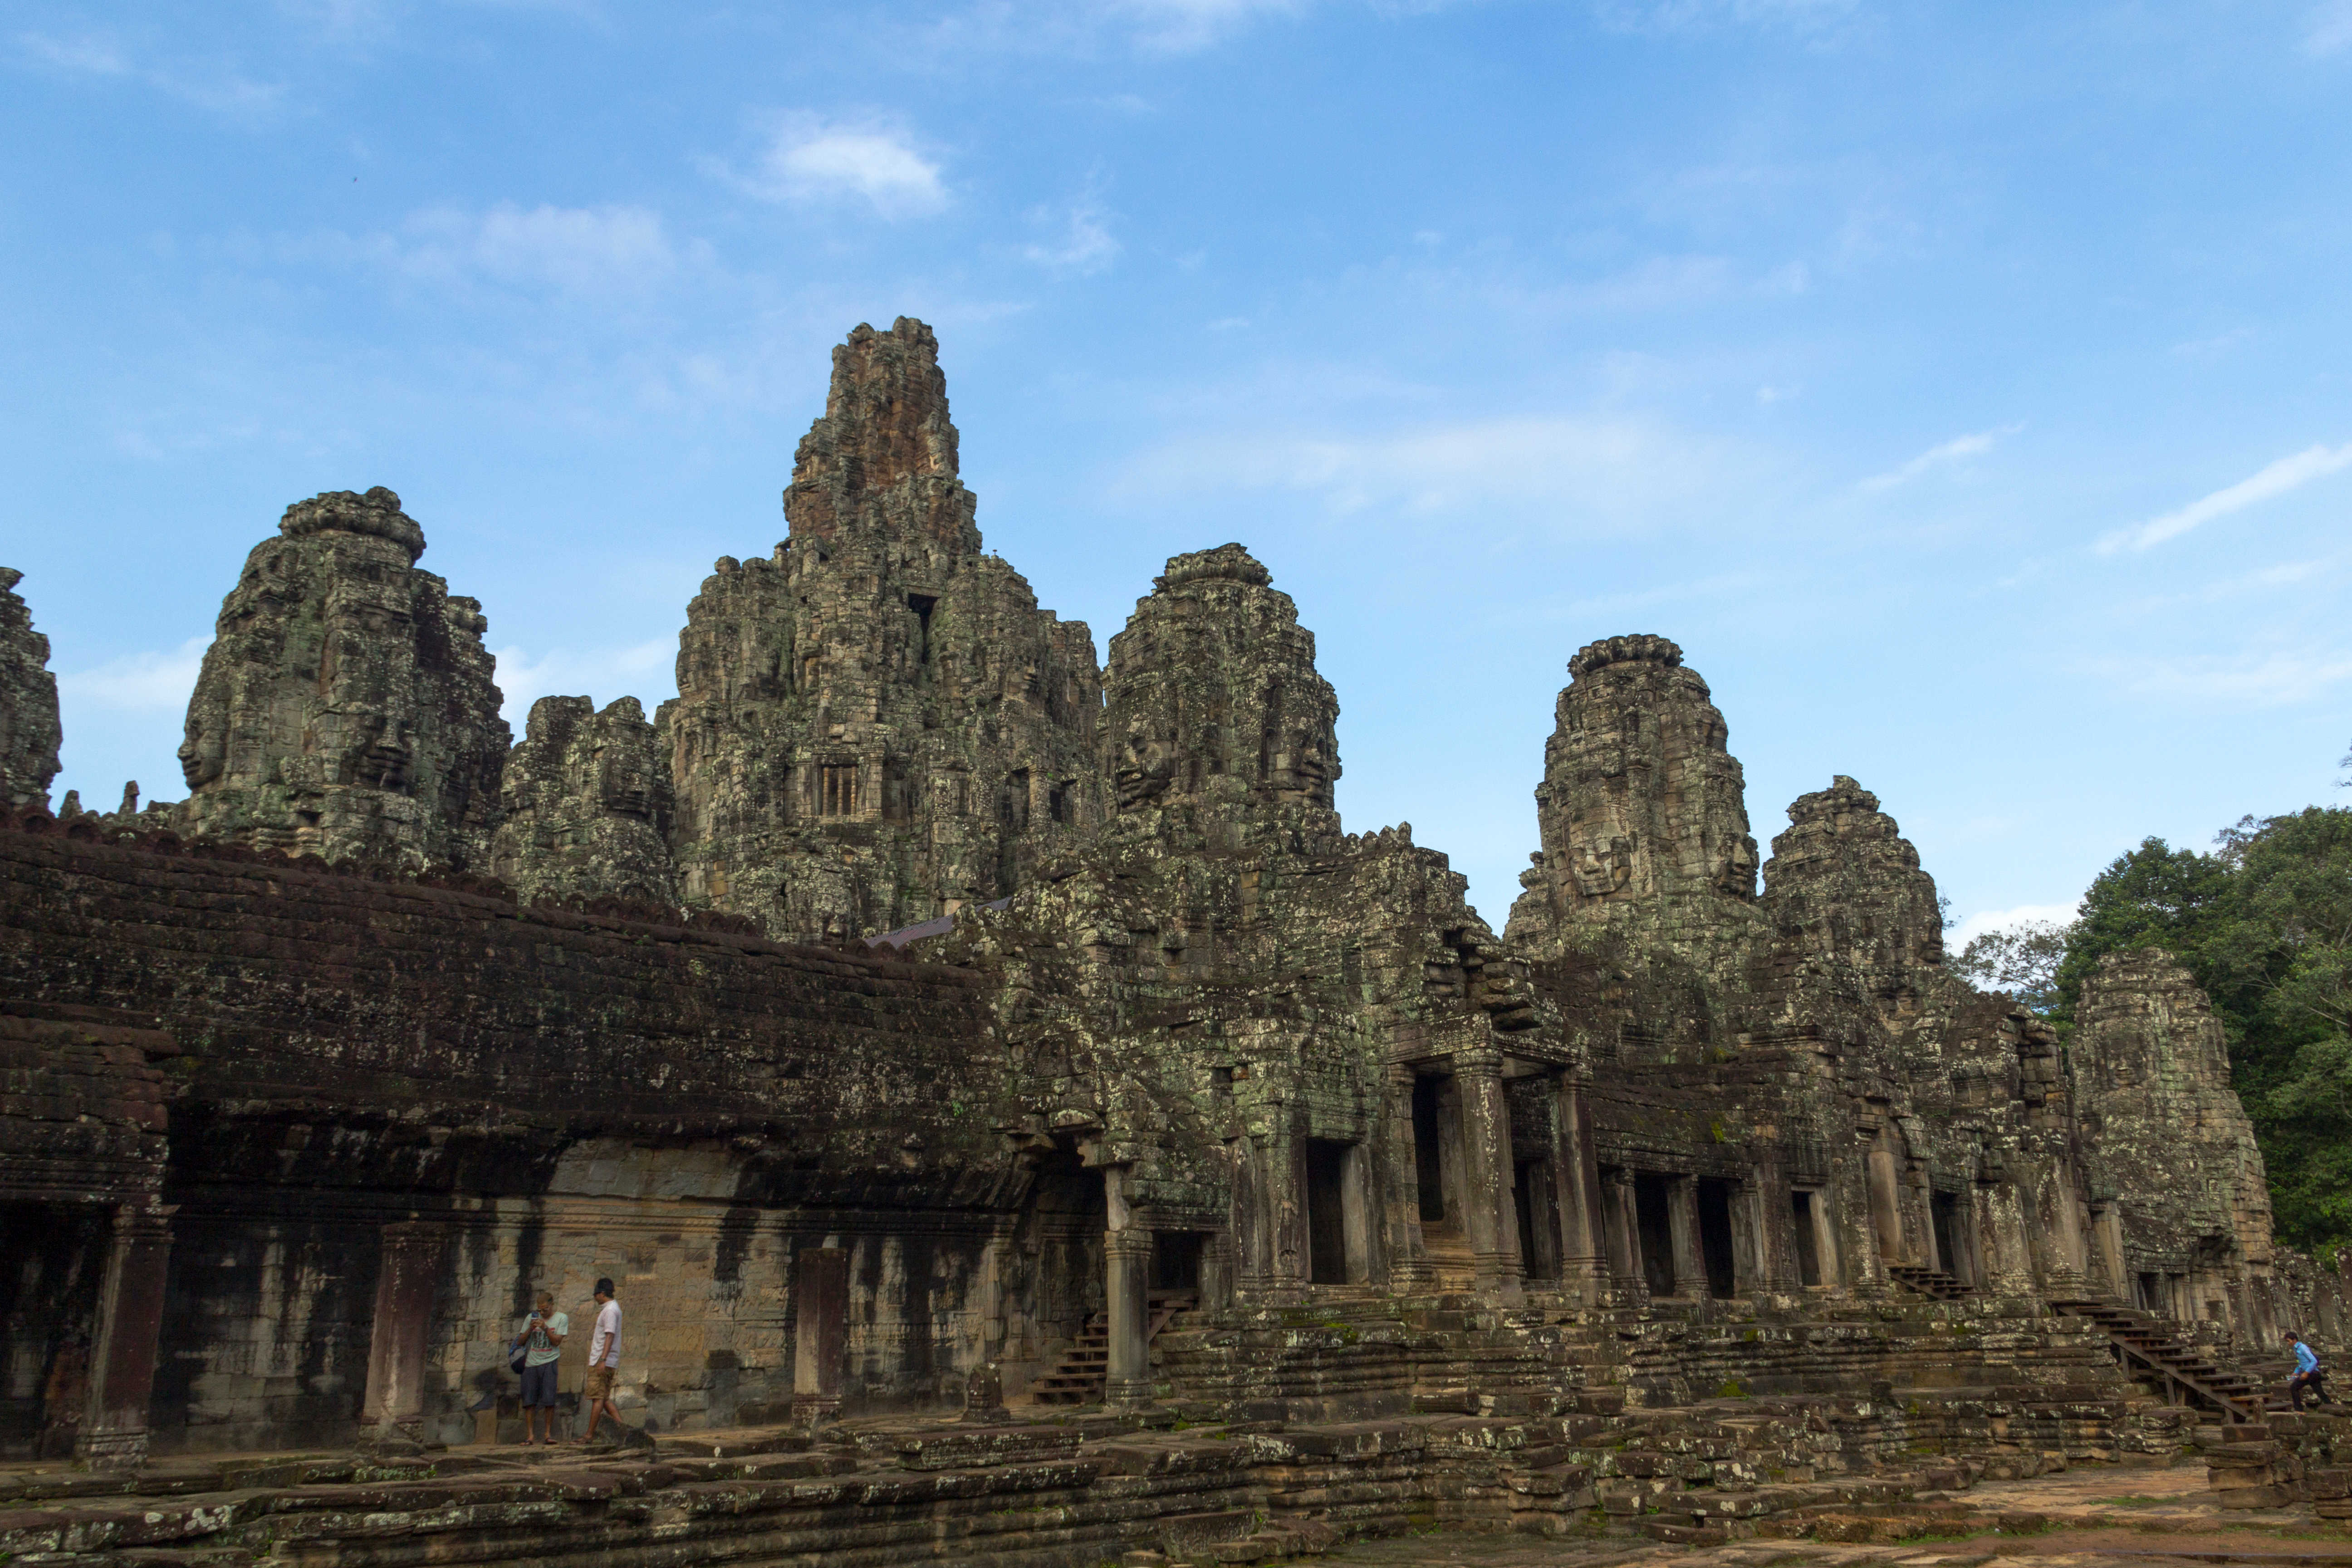 The Bayon Temple